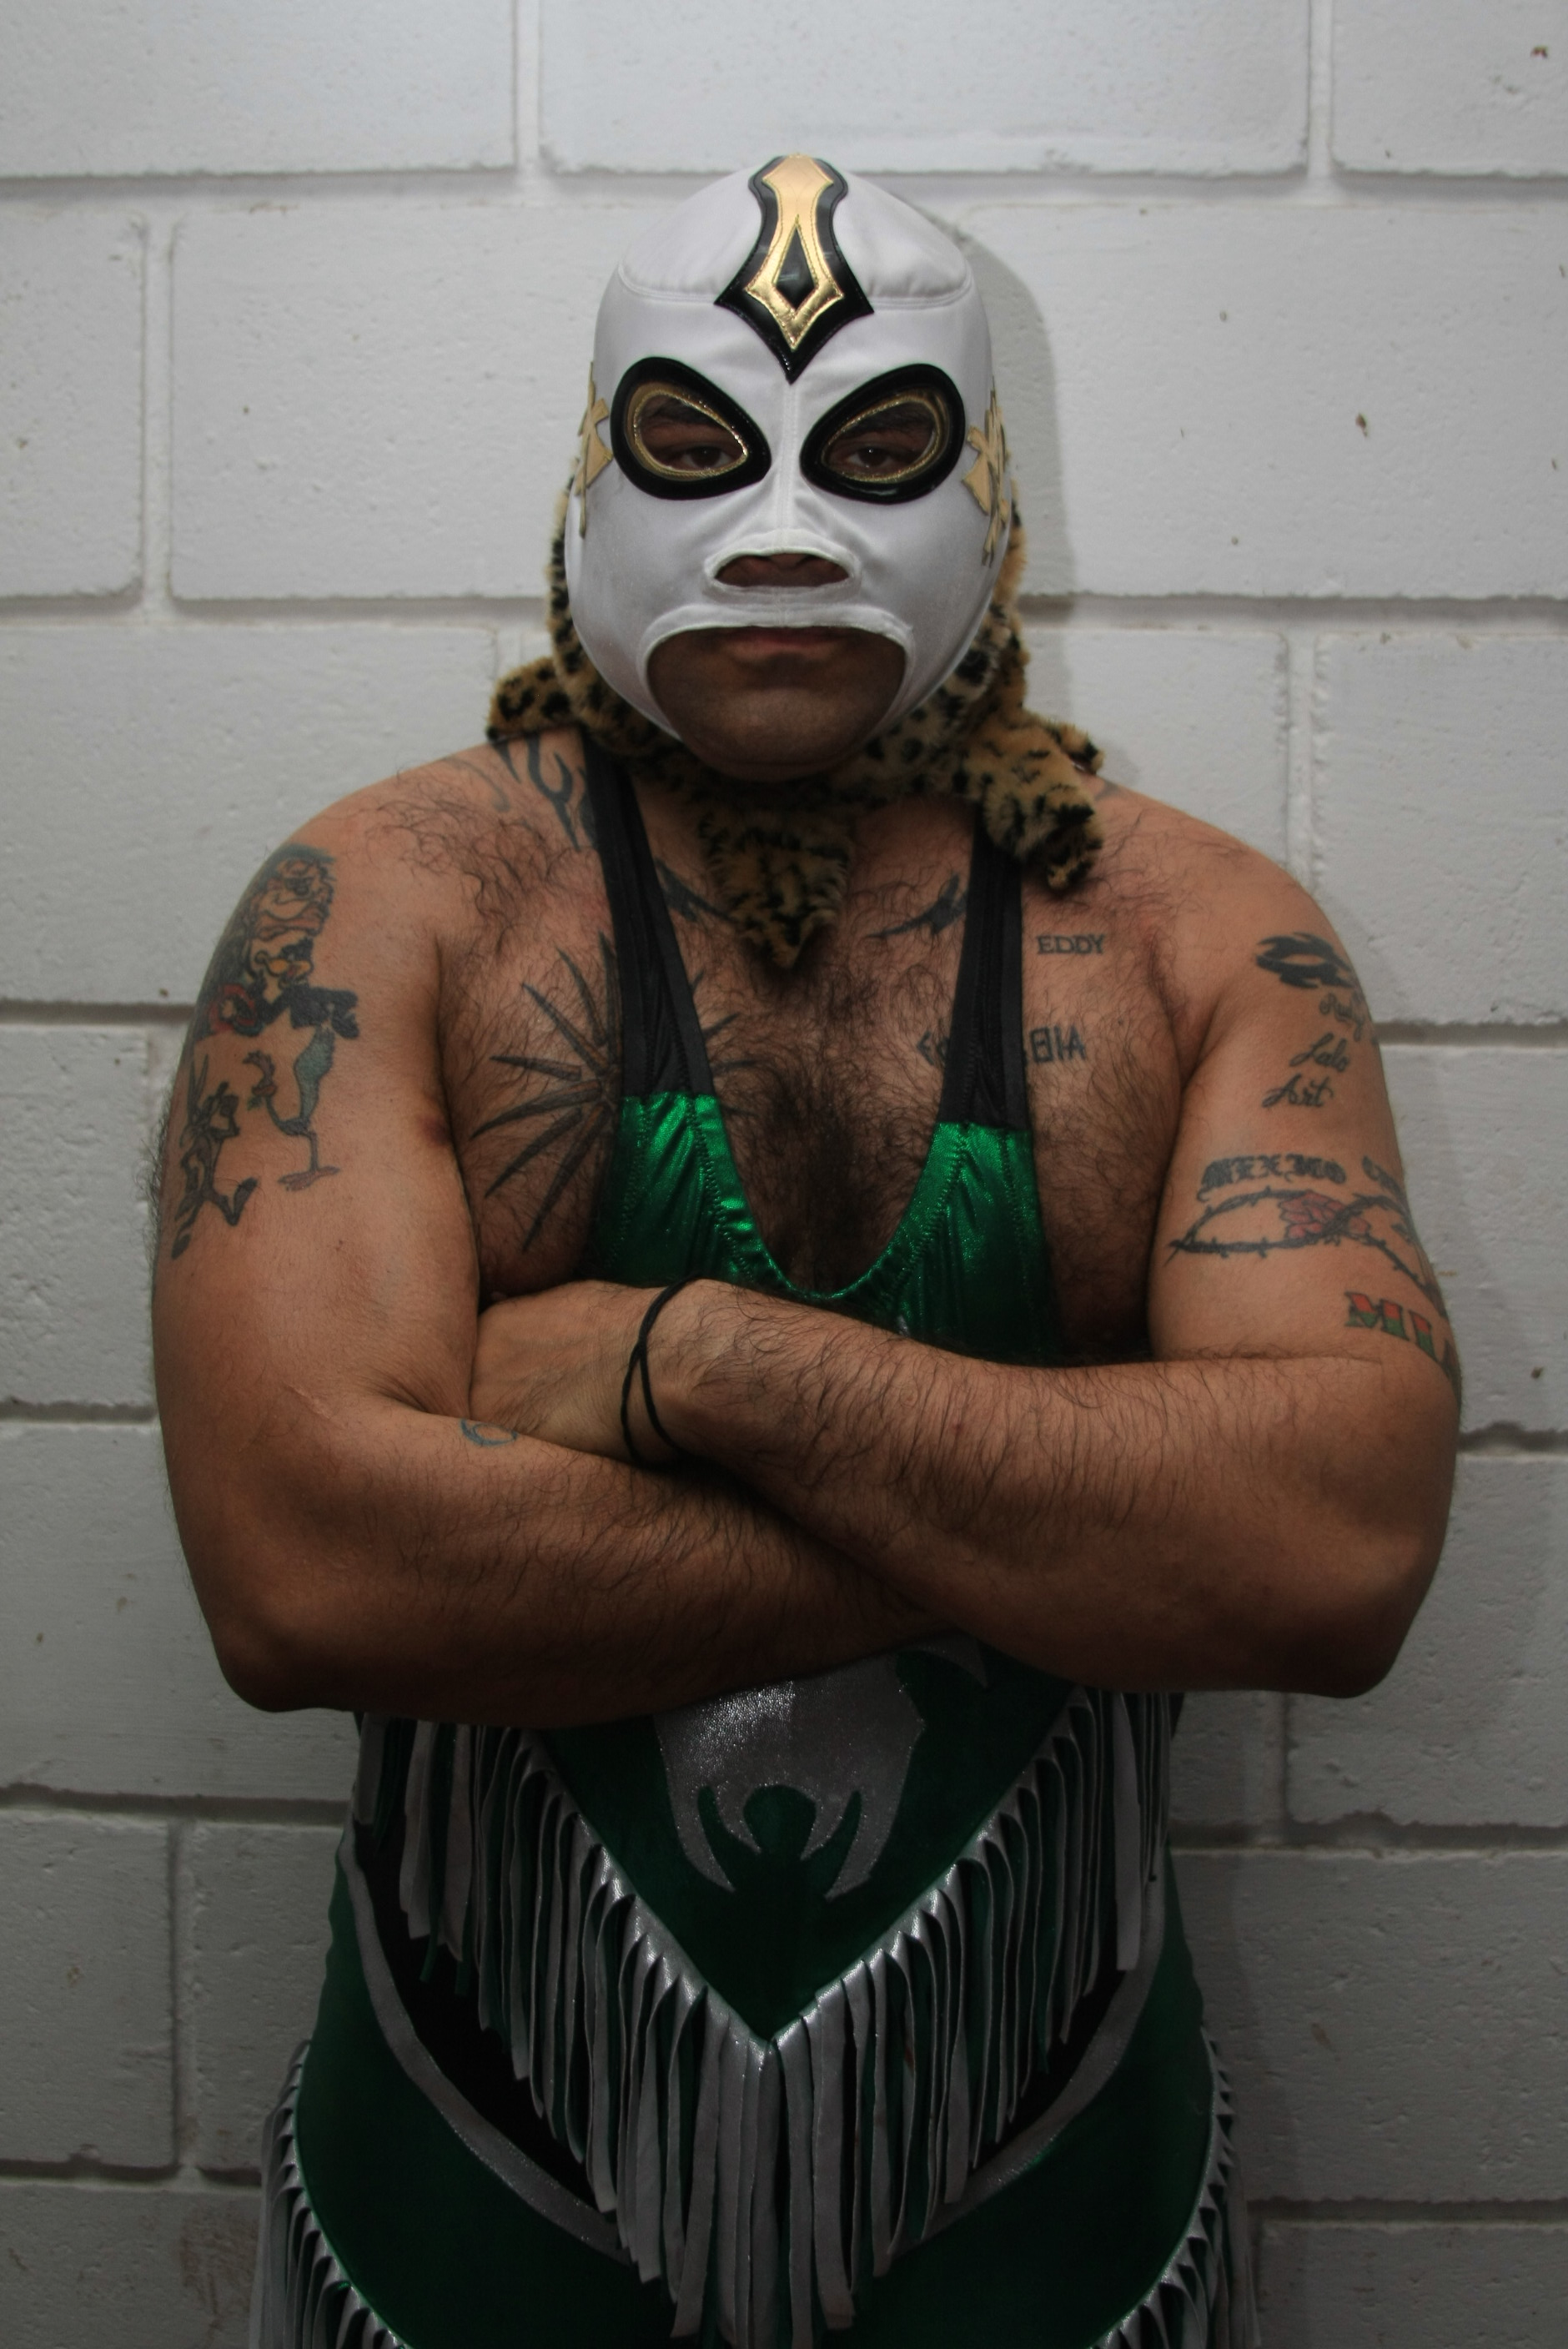 Konnan / Photo by Súper Luchas